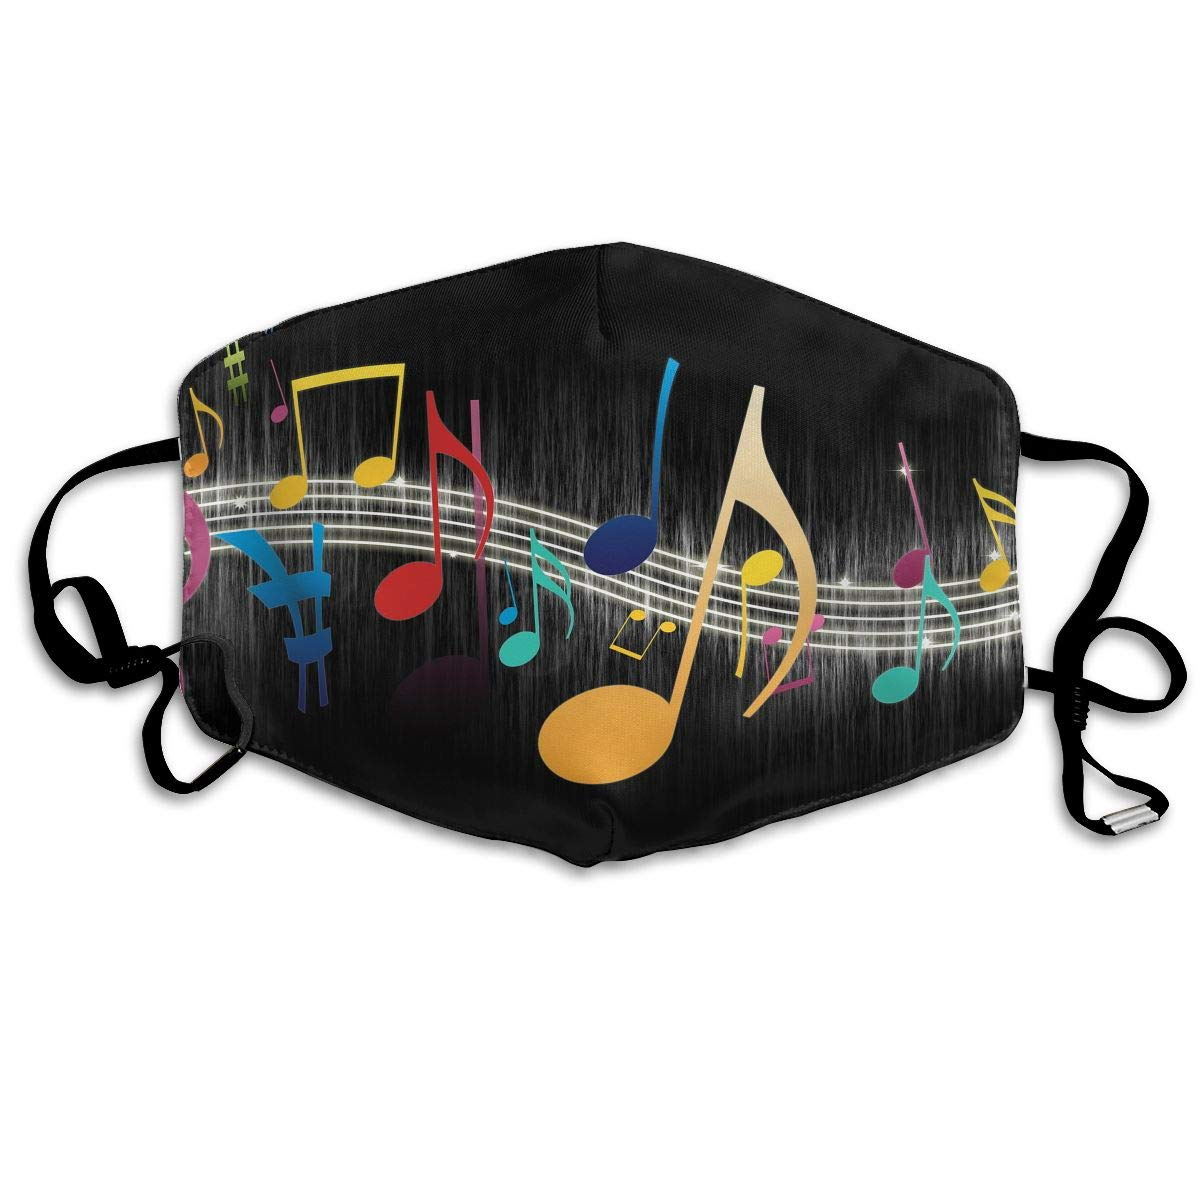 Unisex Print Mouth Mask - Cute Musical Notes Art Polyester Anti-dust Mouth-Muffle - Fashion Washed Reusable Face Masks For